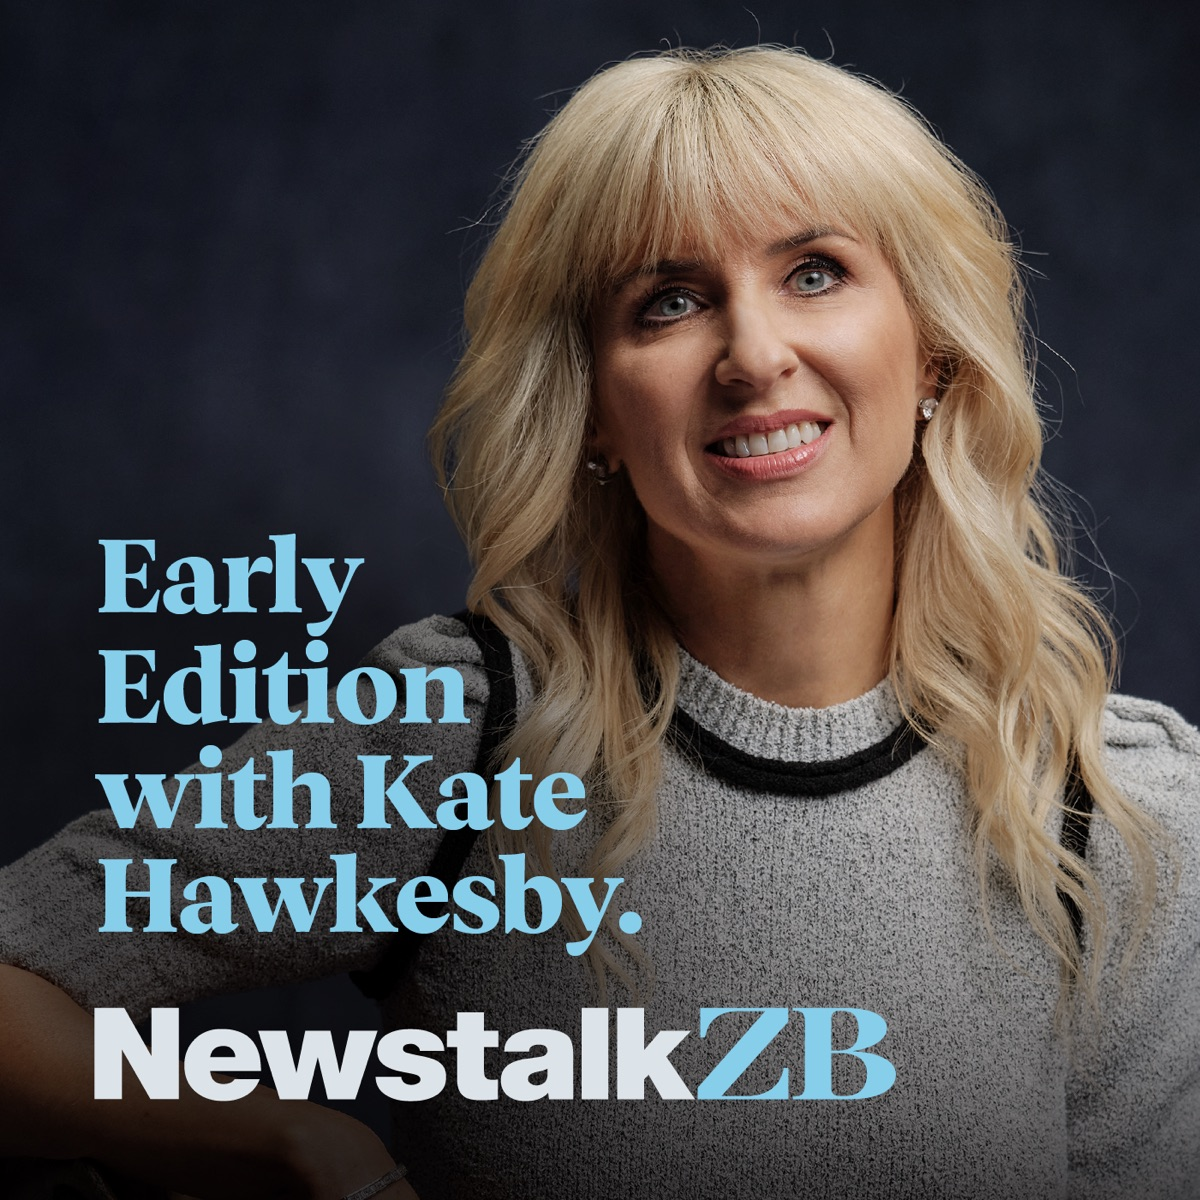 Early Edition with Kate Hawkesby